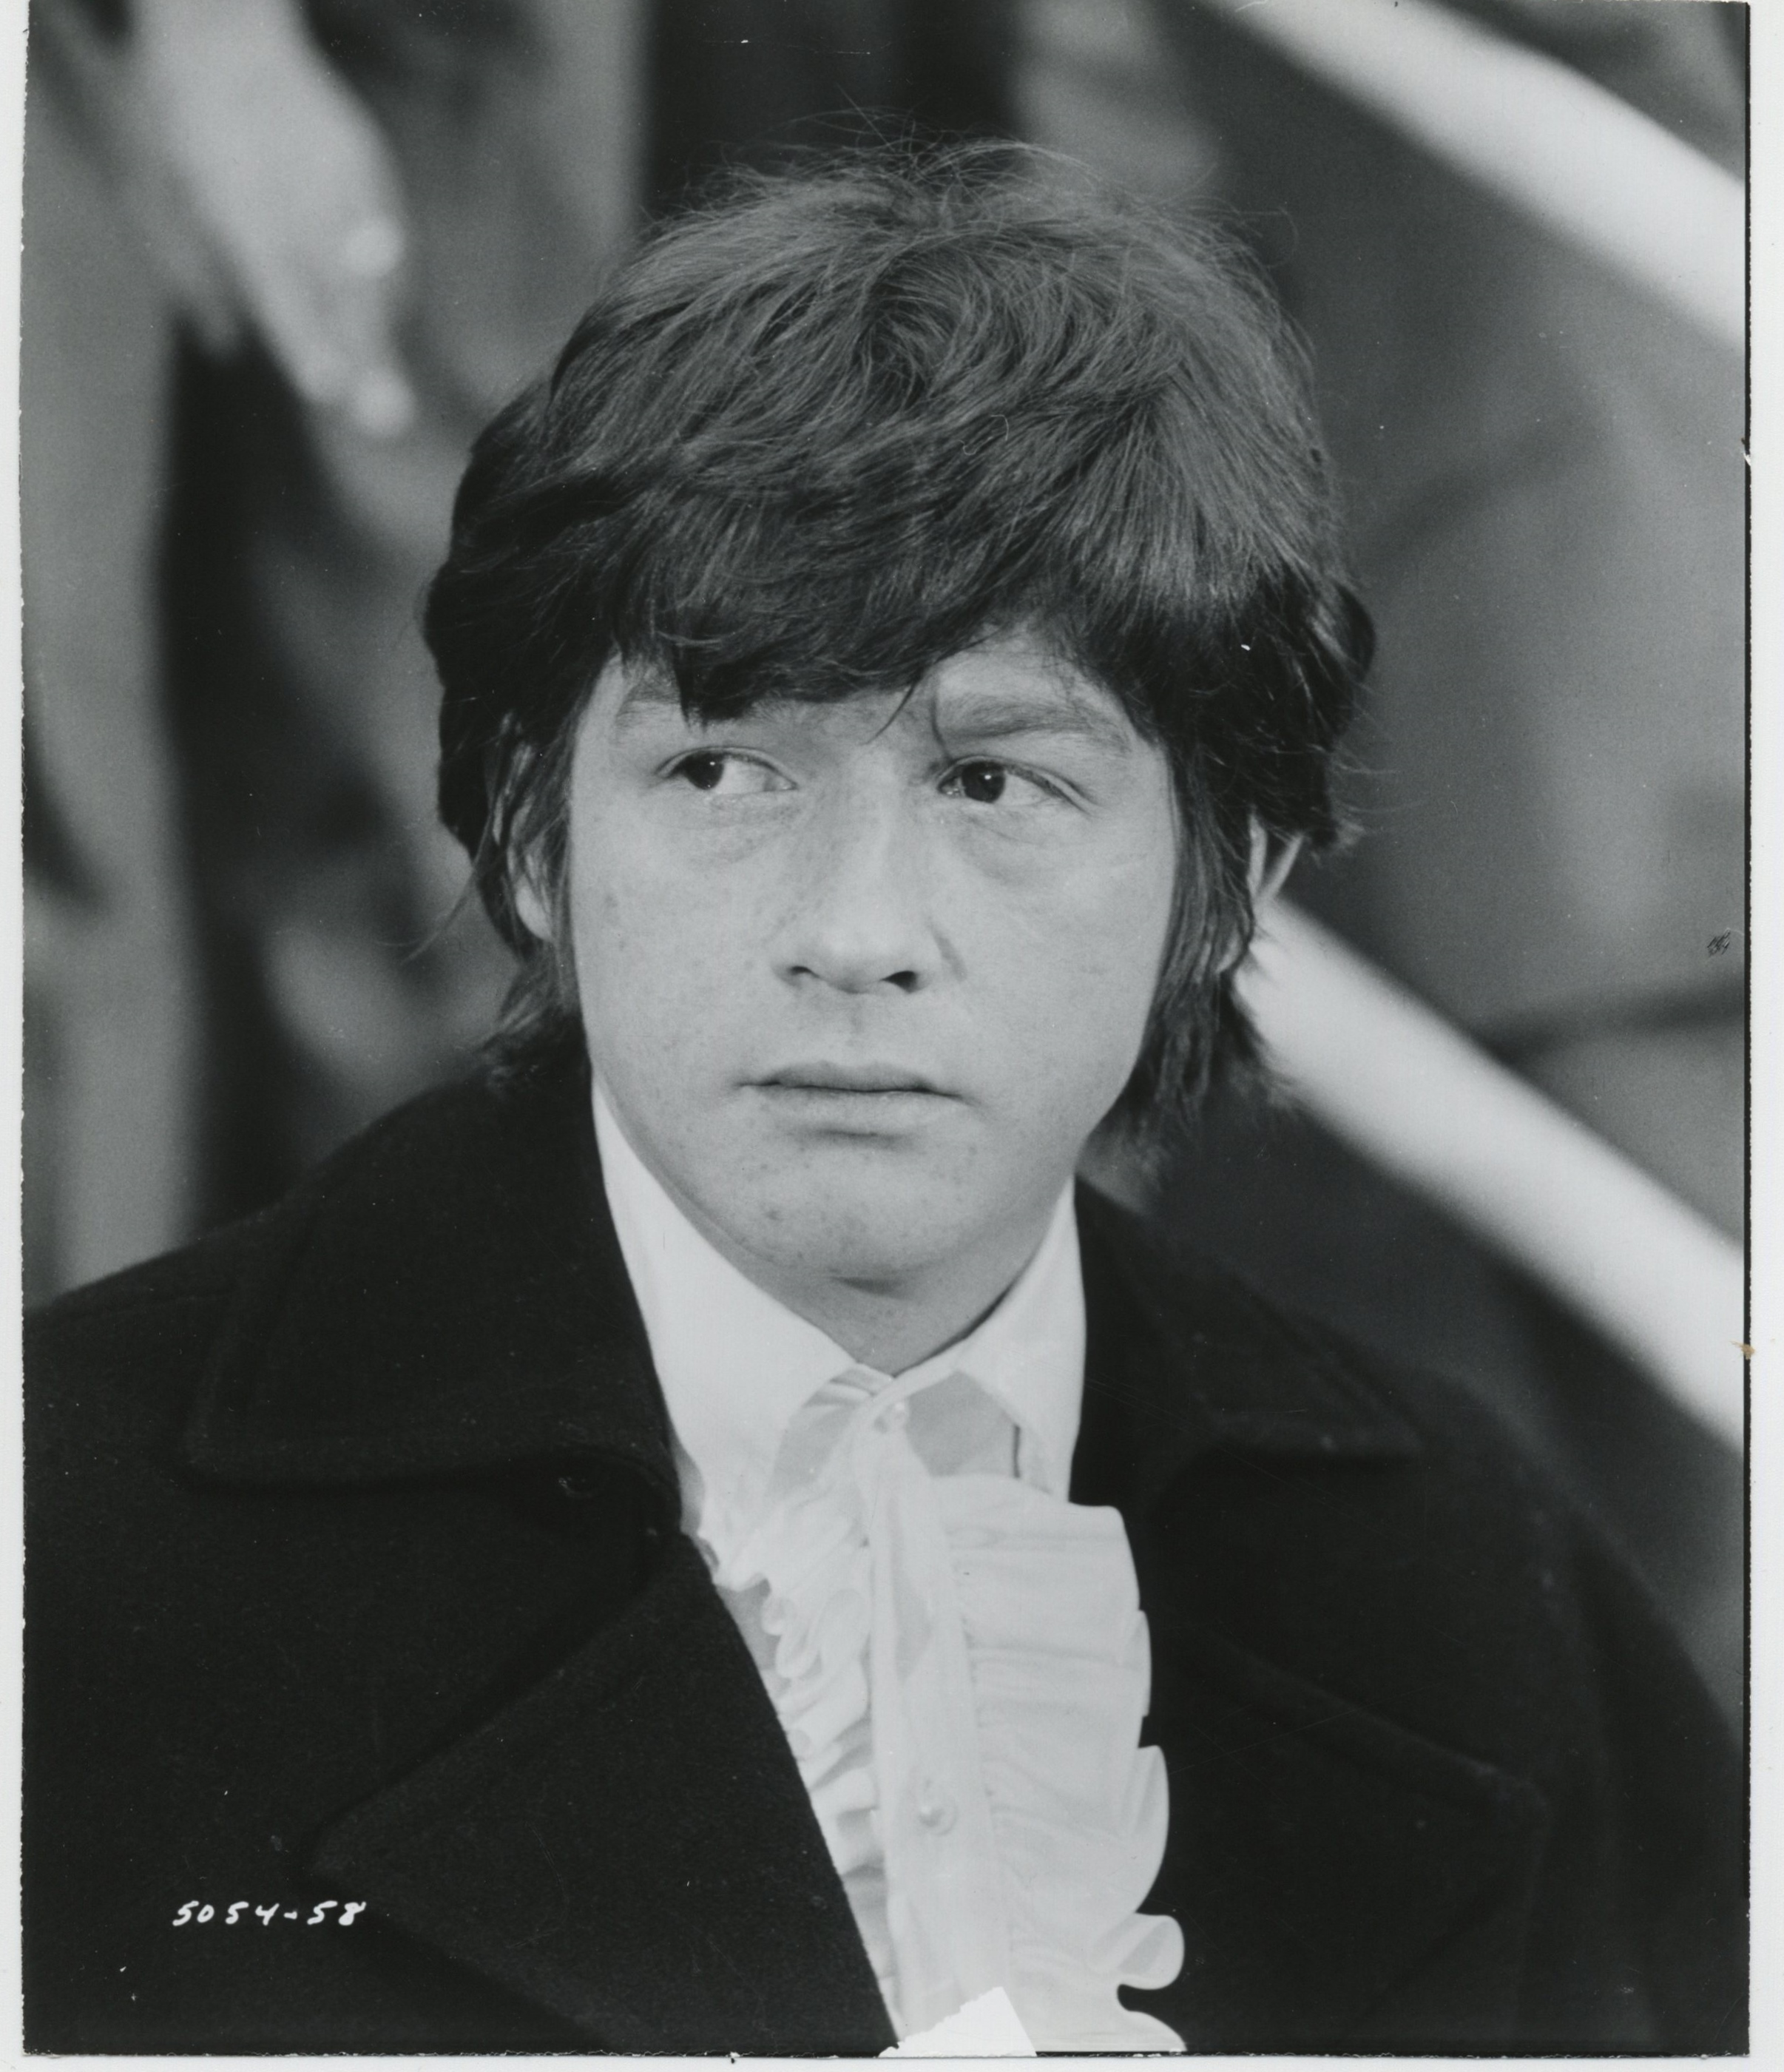 John Hurt in In Search of Gregory (1969)